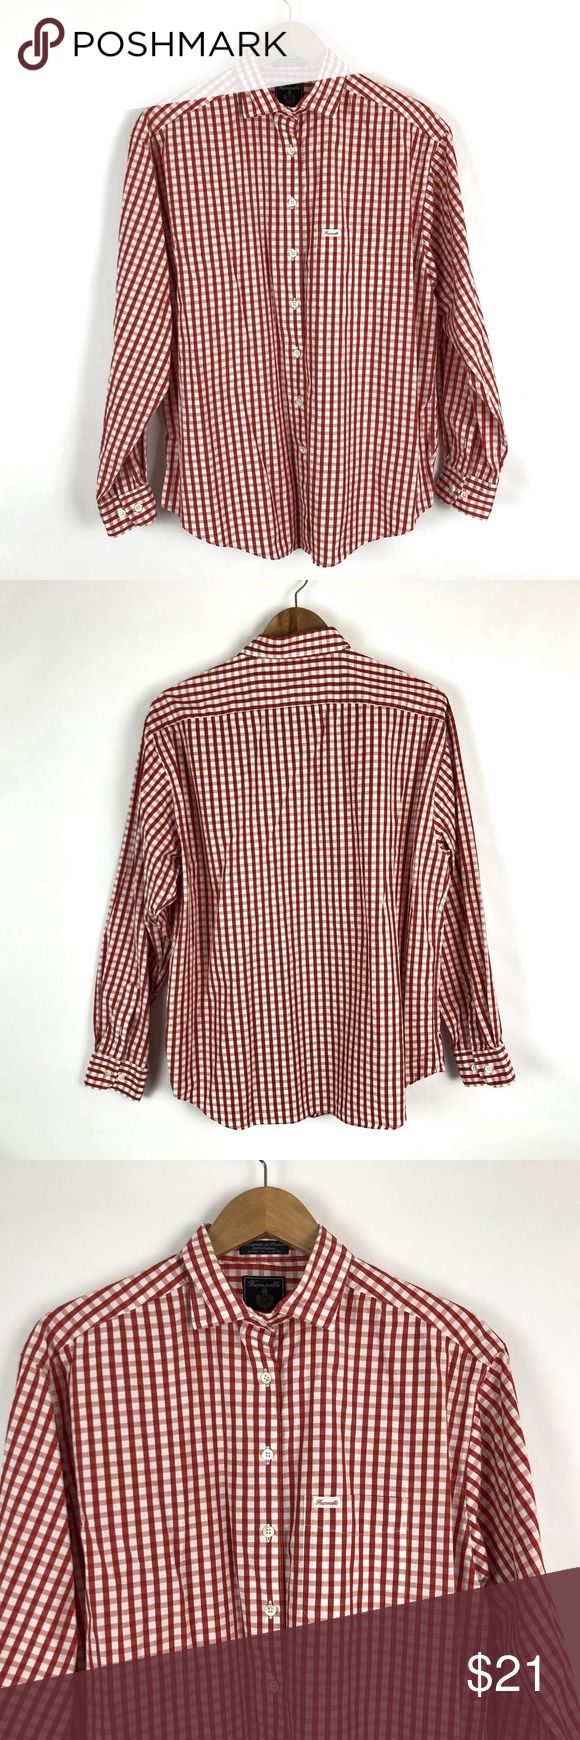 """Faconnable Red White Gingham Men Button Shirt Size large  Total Length 28.5""""  Sleeve Length 23.5""""  Underarm to Underarm 24.5""""  Pre Owned  Great Shape No Holes Stains or Fading  Pet Free Smoke Free  N Faconnable Shirts Casual Button Down Shirts"""